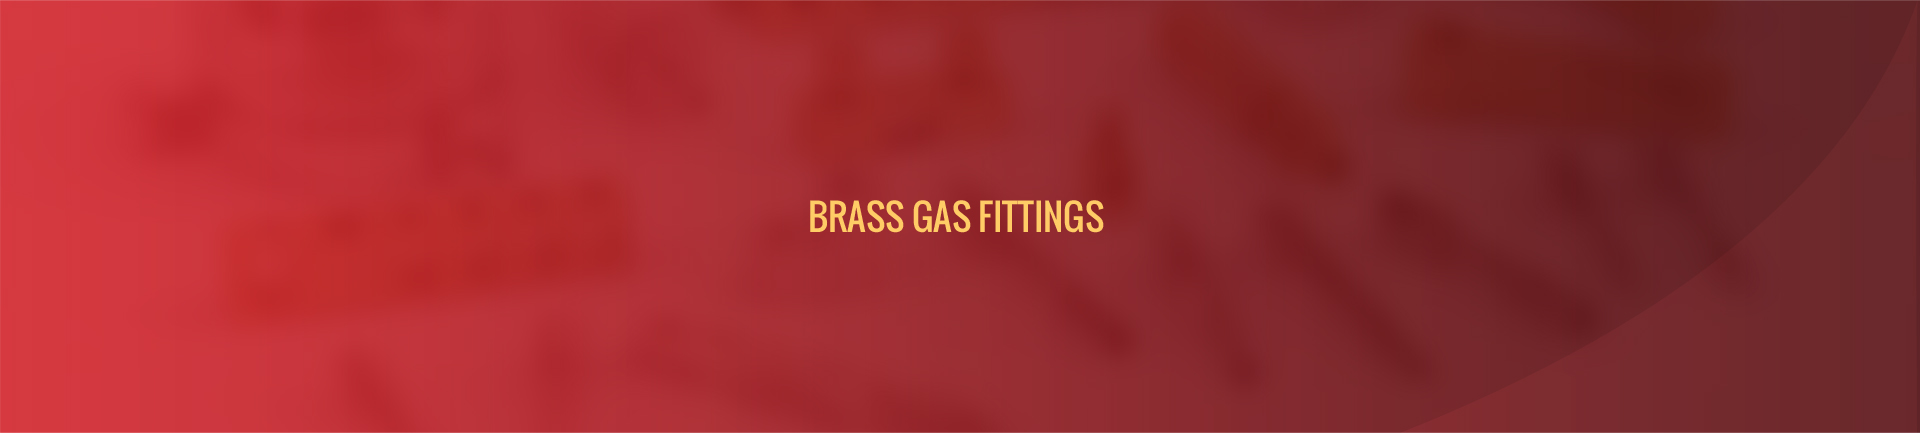 brass-gas-fittings-banner